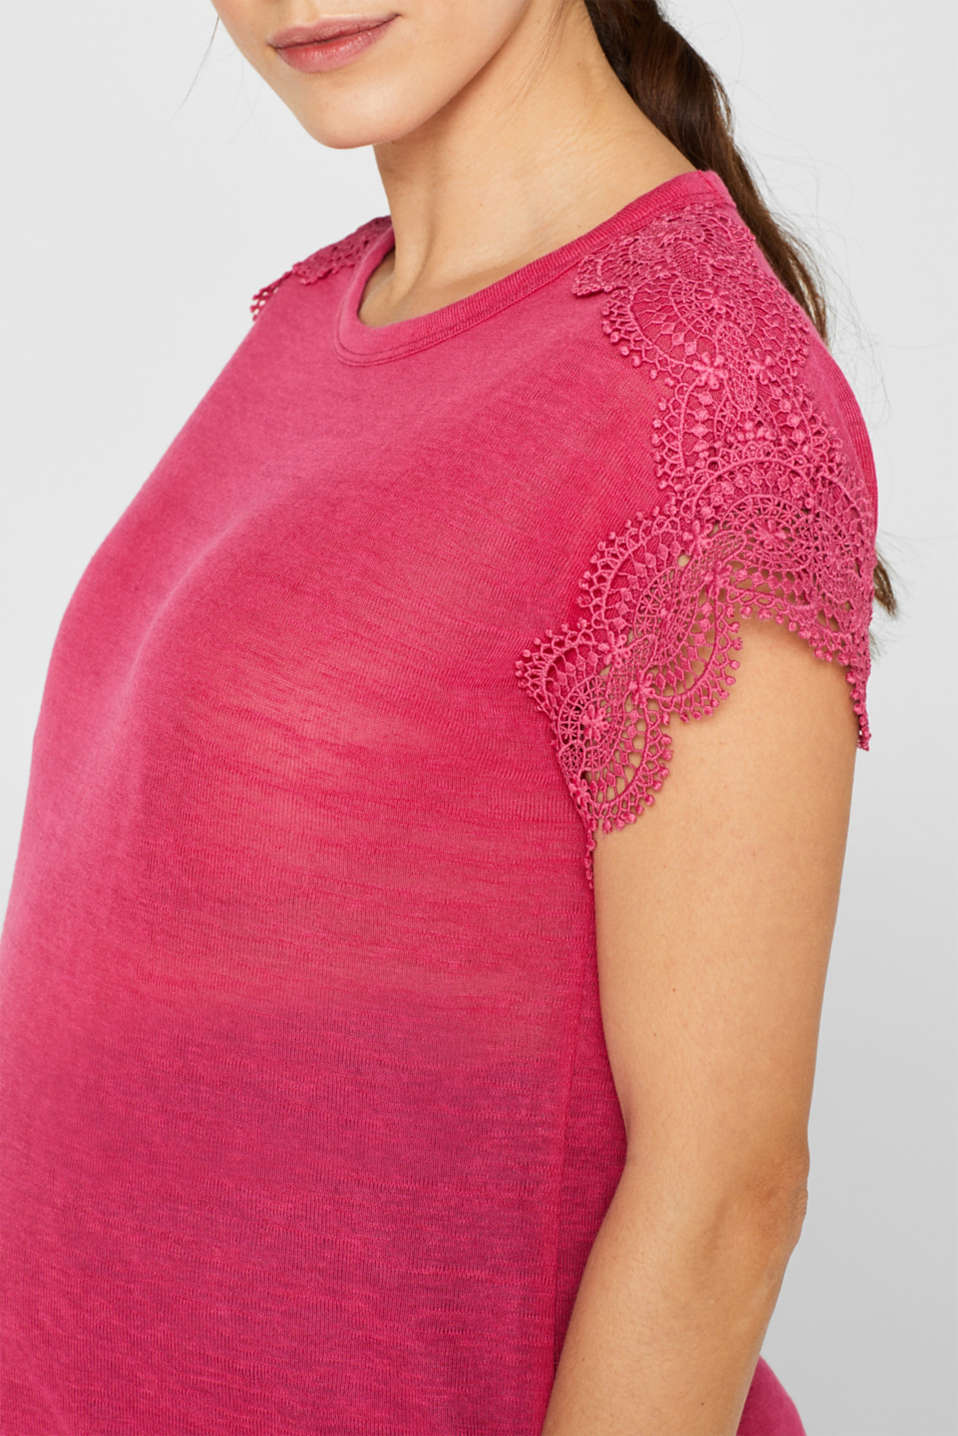 Lace-trimmed slub tee, LCPINK FUCHSIA, detail image number 2